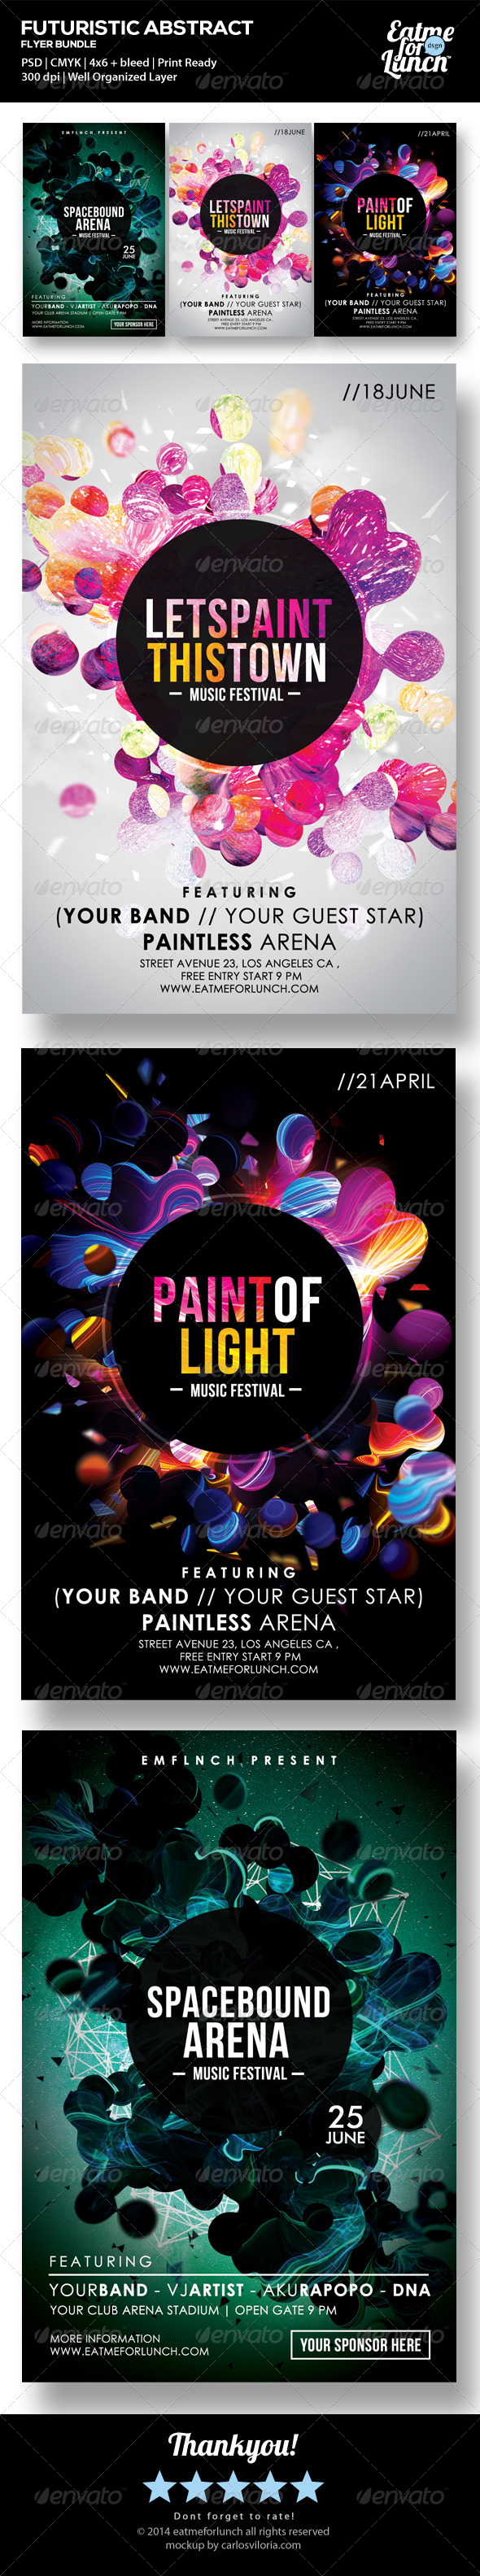 GraphicRiver Futuristic Abstract Electronic Vol.1 Flyer Bundle 7468696